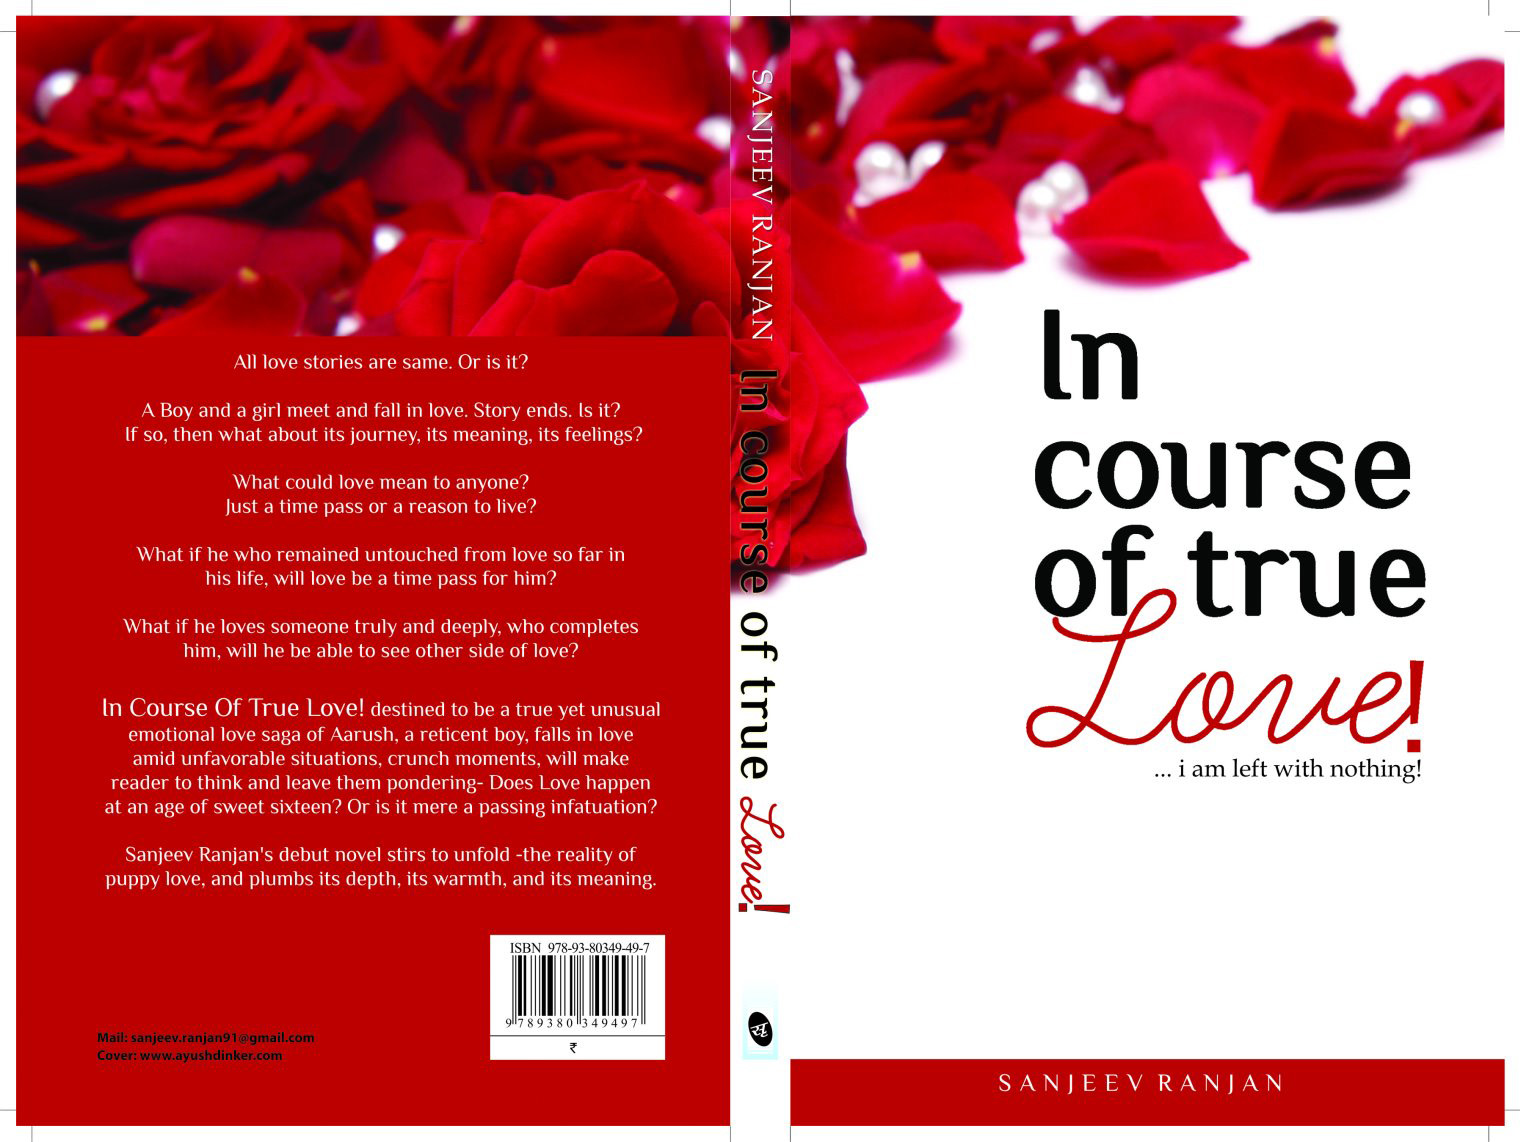 In course of true love by sanjeev ranjan